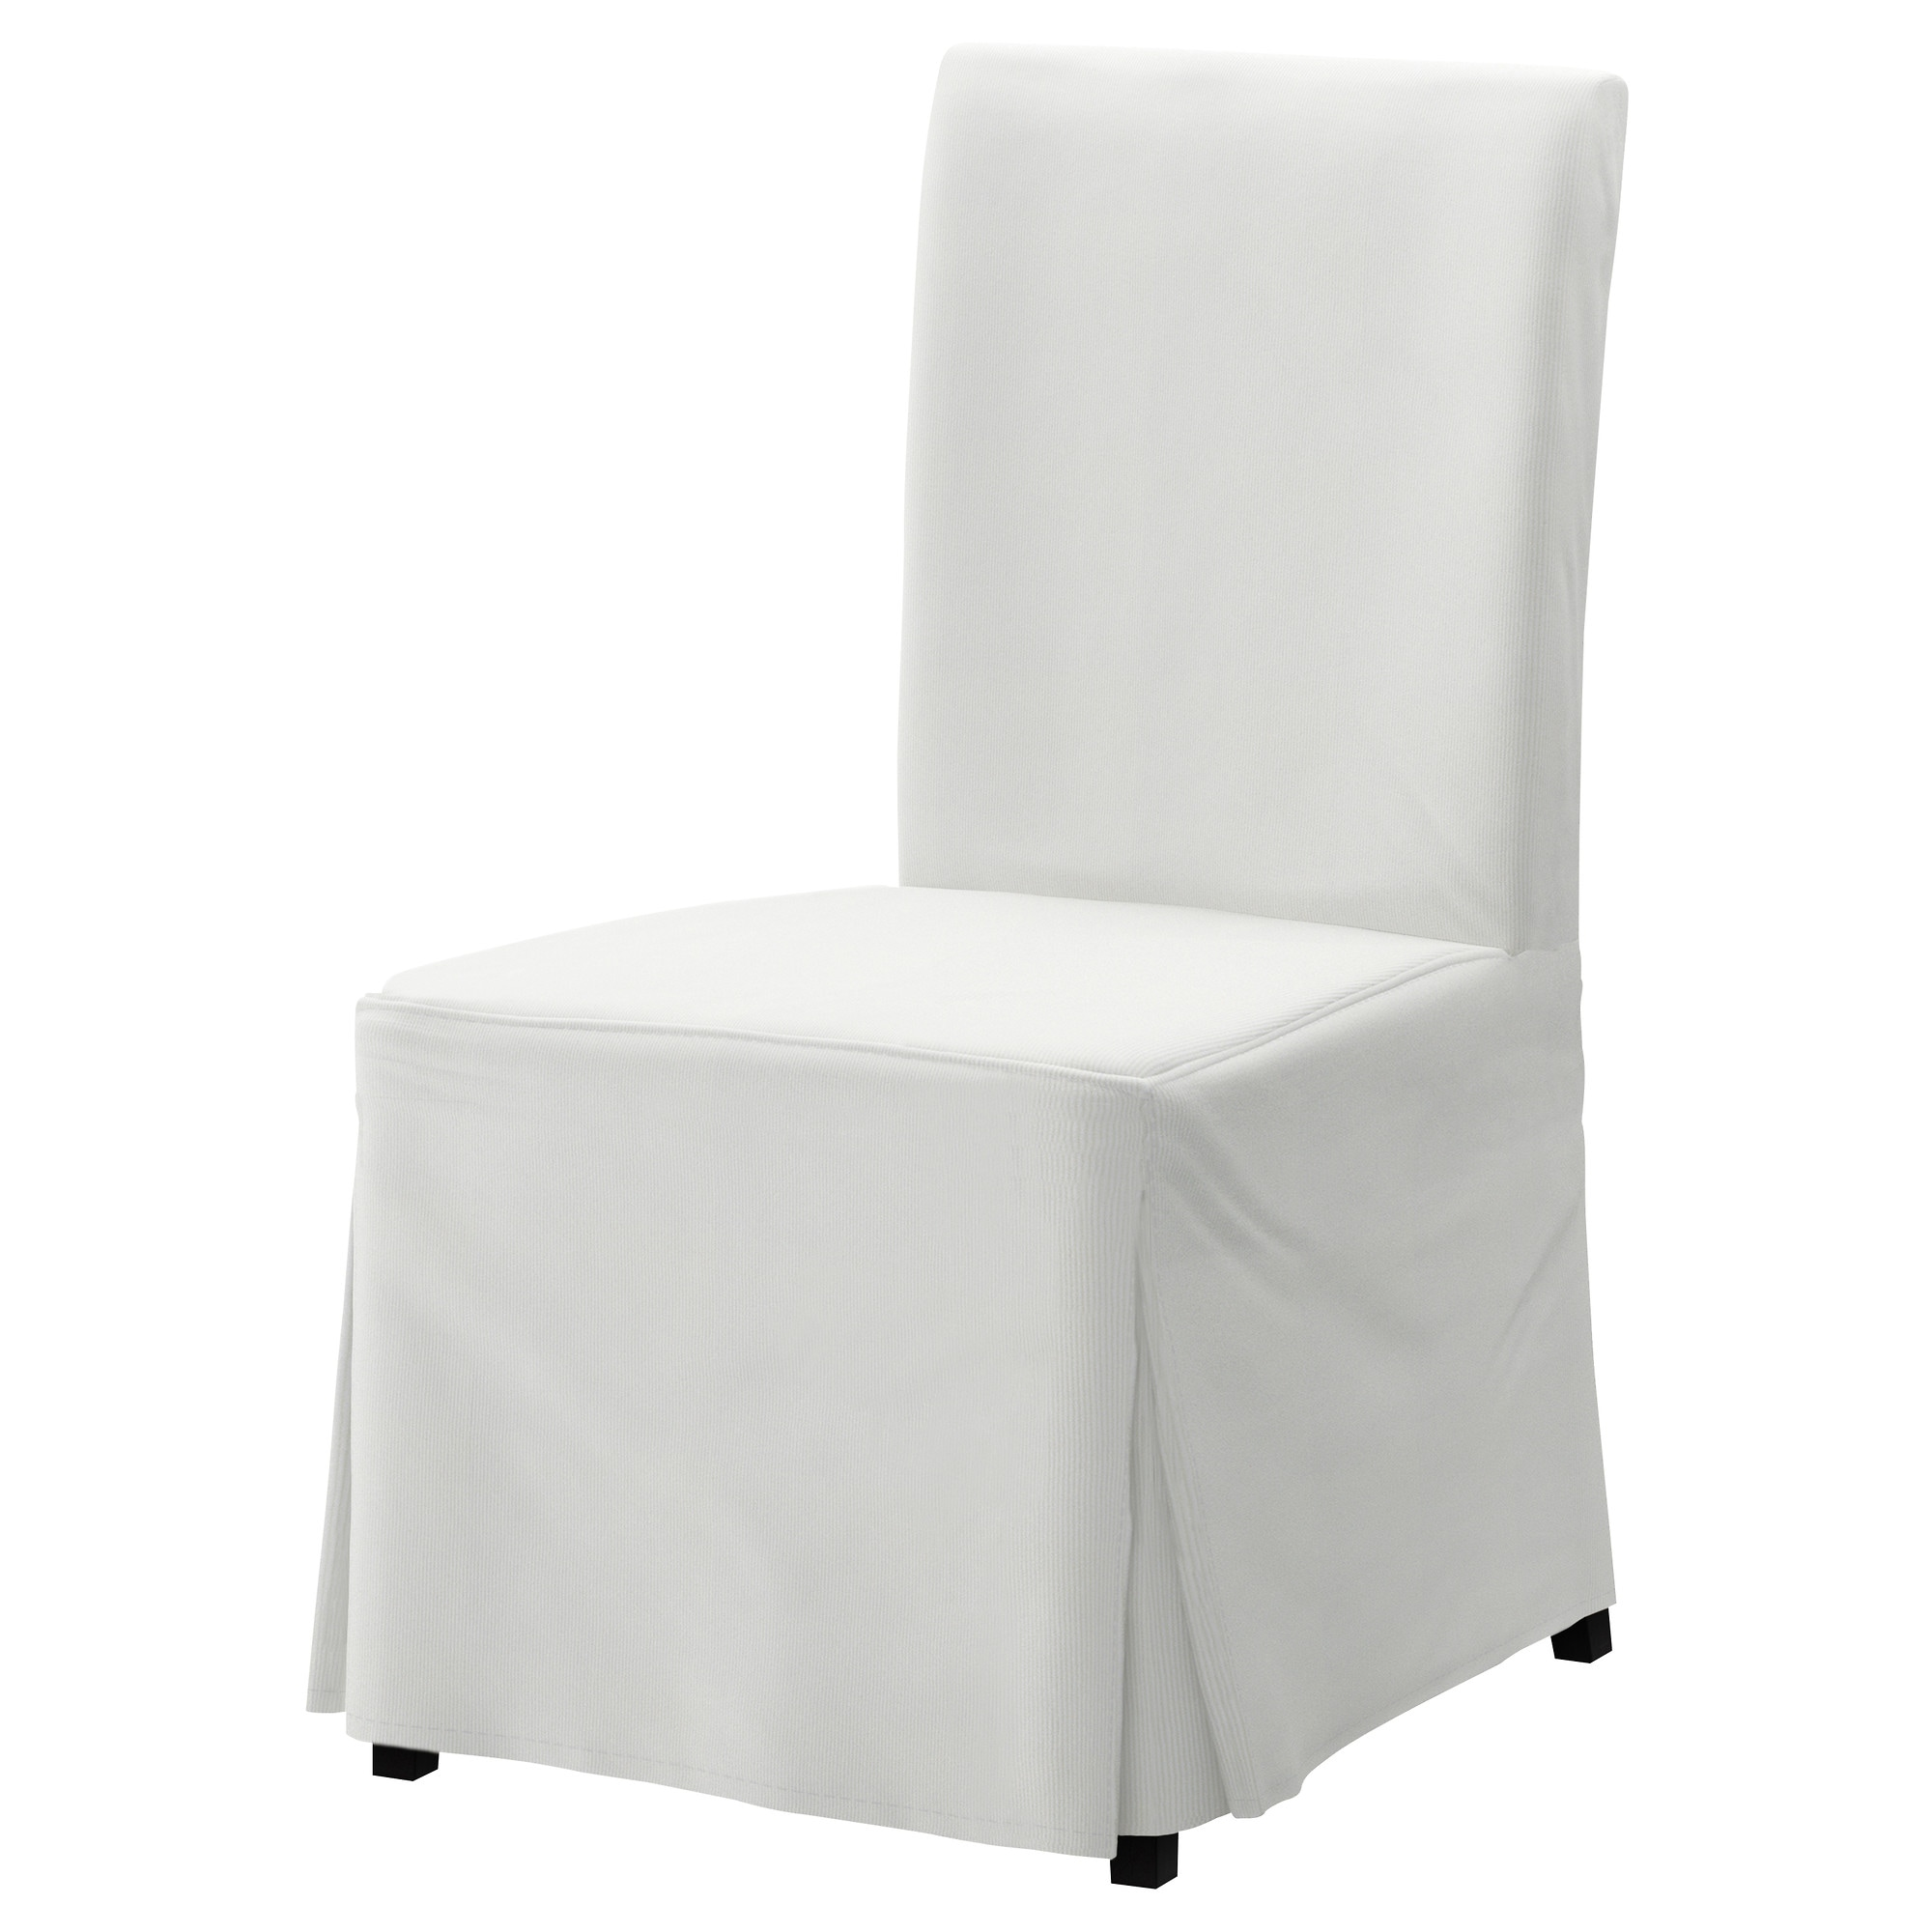 Superior HENRIKSDAL Chair With Long Cover   Blekinge White, Brown Black   IKEA